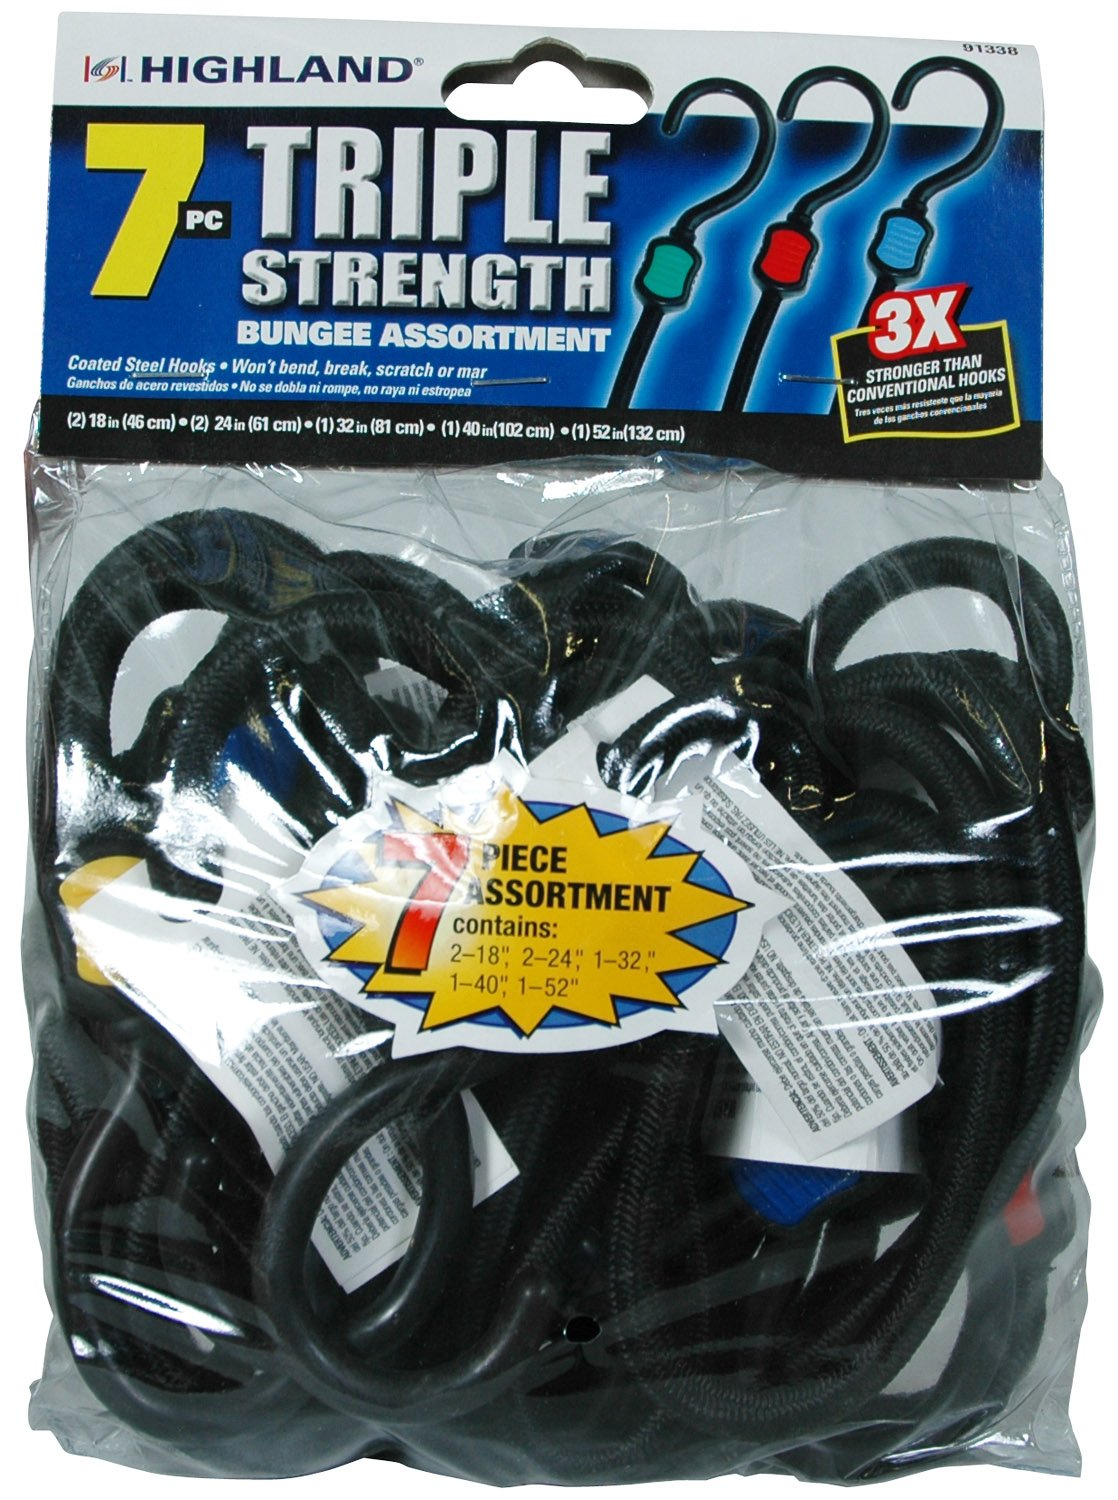 Highland 9133800 7 Piece Triple Strength Bungee Cord Assortment